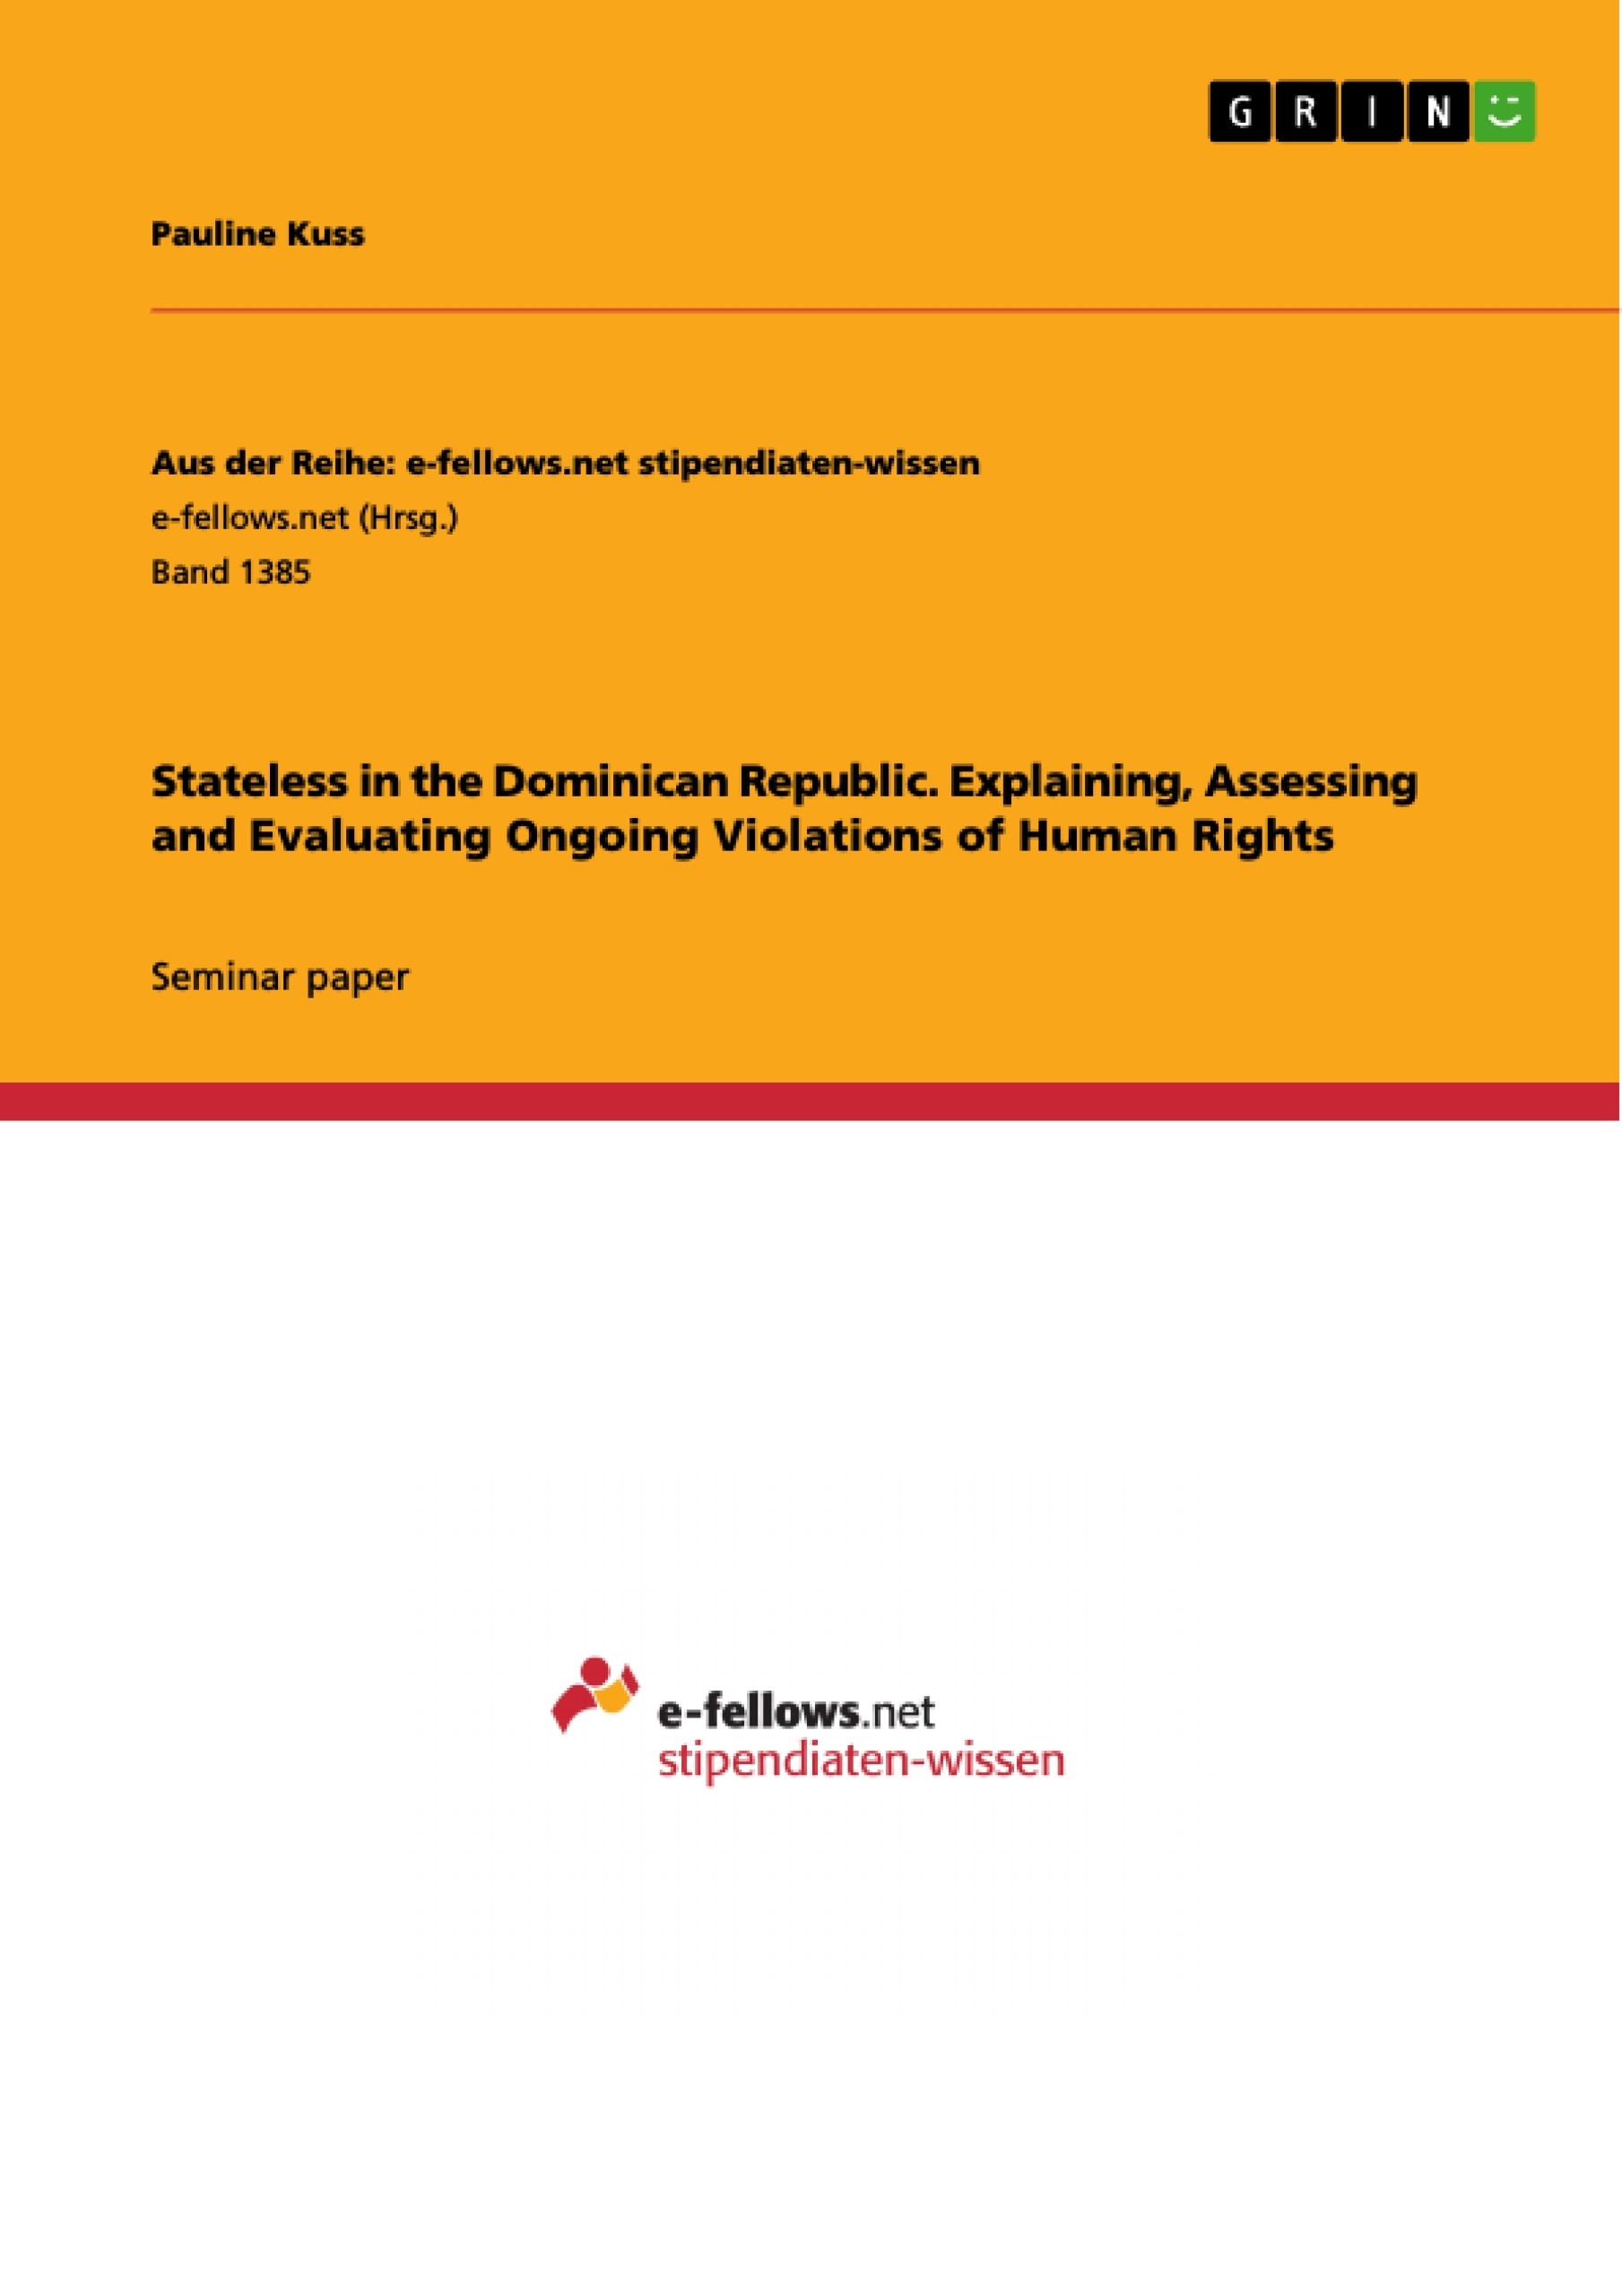 Title: Stateless in the Dominican Republic. Explaining, Assessing and Evaluating Ongoing Violations of Human Rights